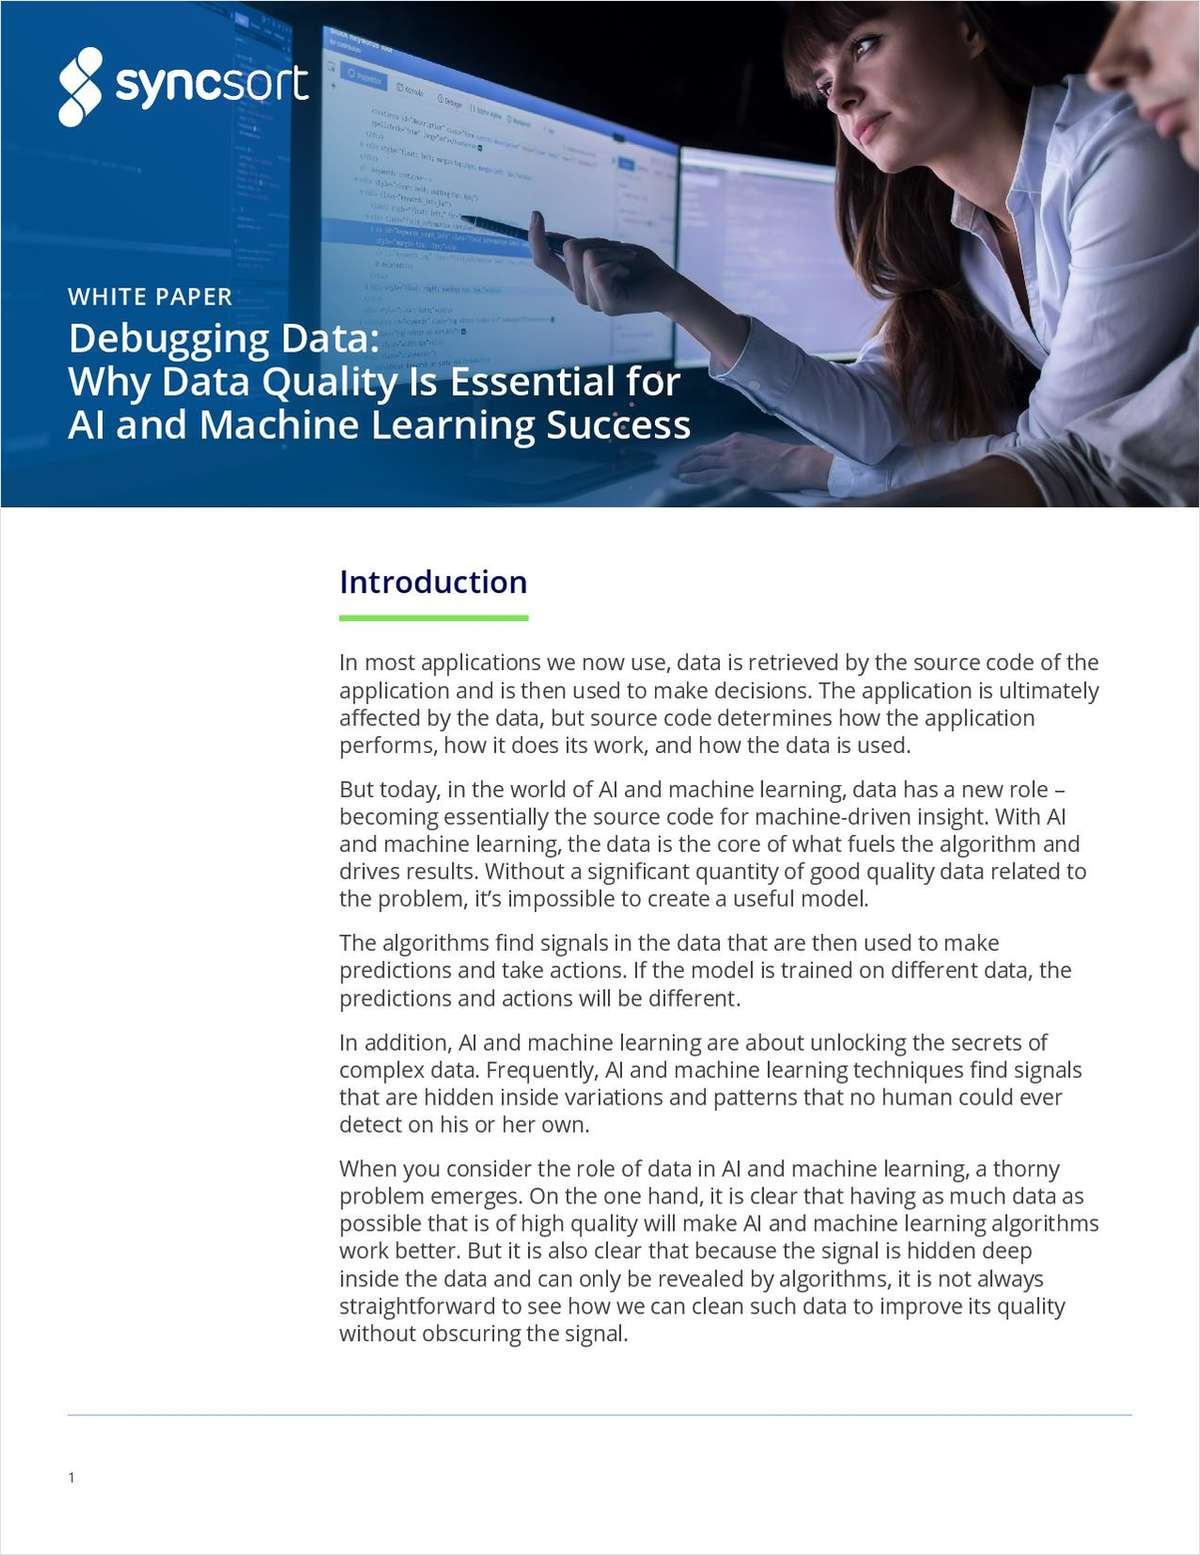 Learn Why Data Quality is Essential for AI and Machine Learning Success